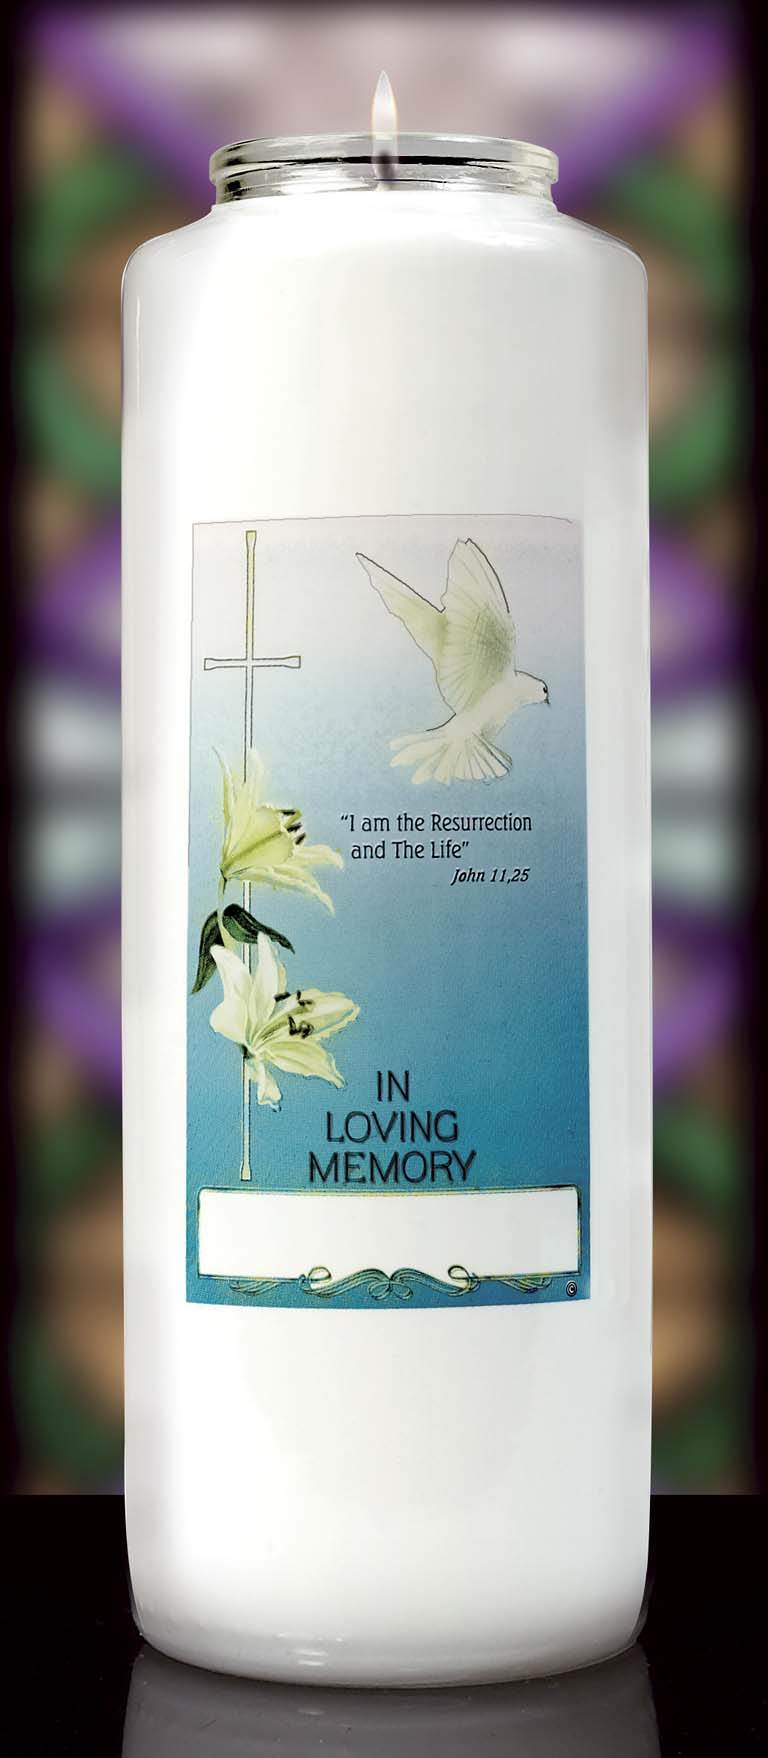 In Loving Memory Glass Bottle Style Candle In Loving Memory Glass Bottle Style Candle,2101,all souls day